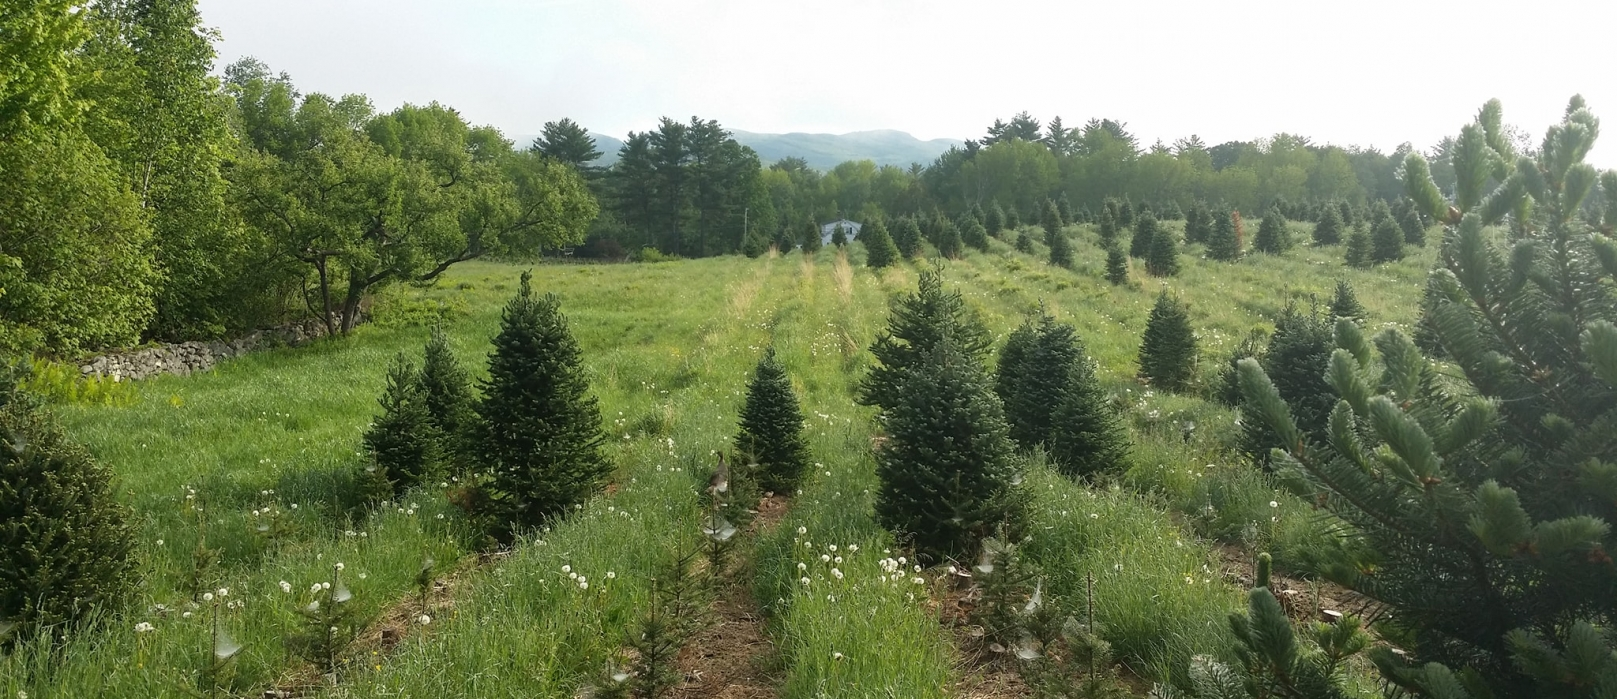 Rows of Christmas trees in a green field with a few tiny saplings among them.